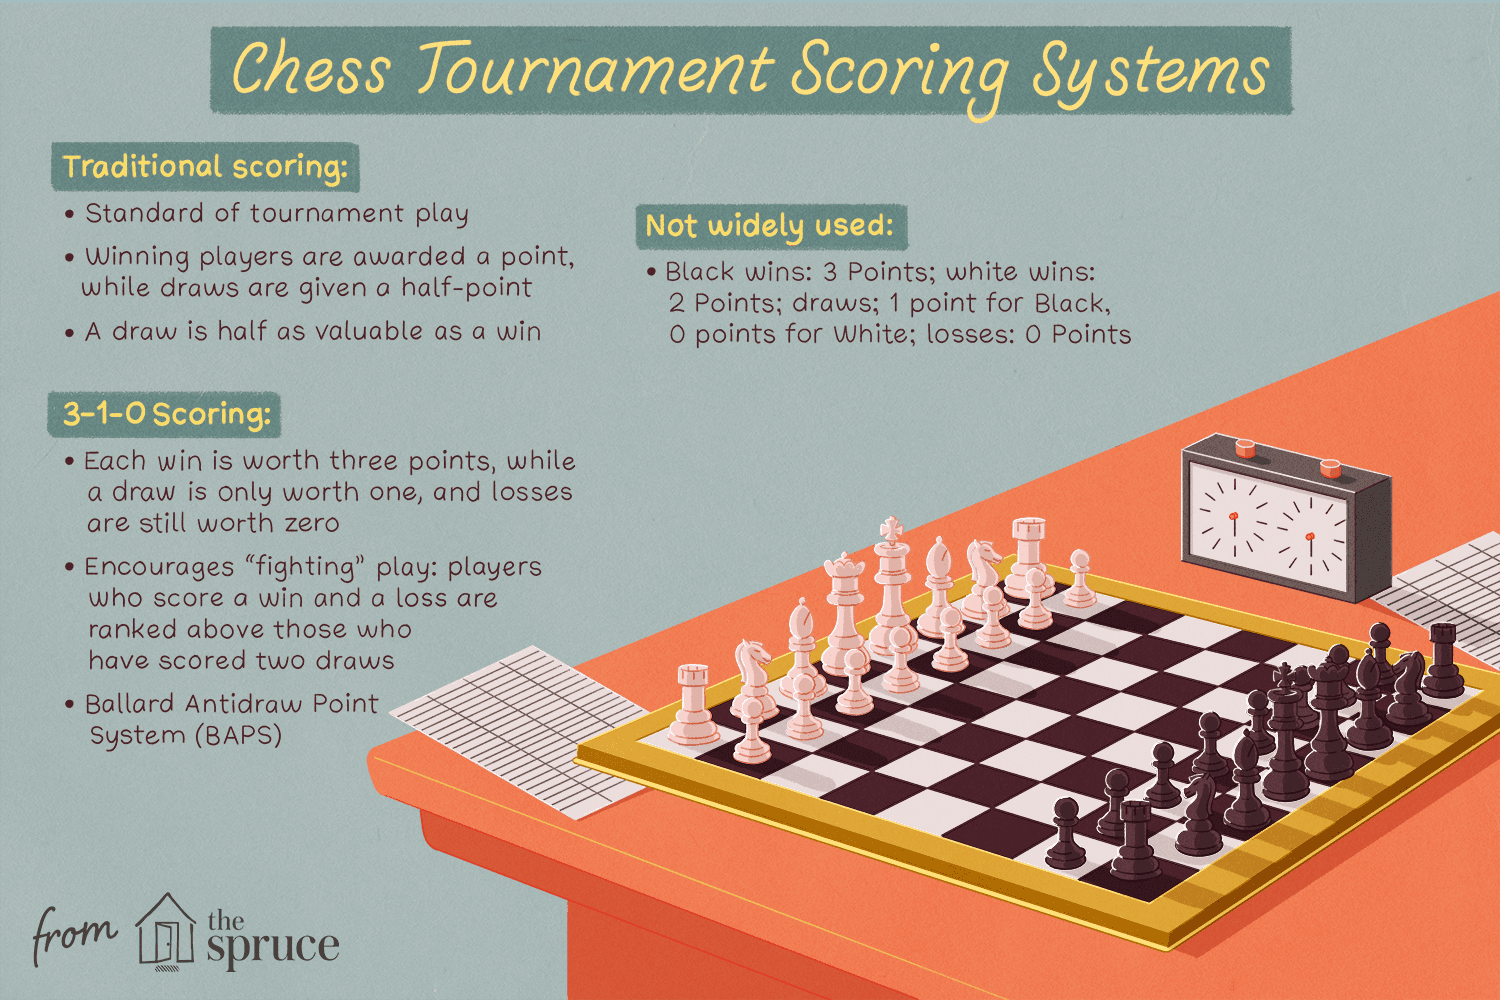 Illustration of chess tournament scoring systems